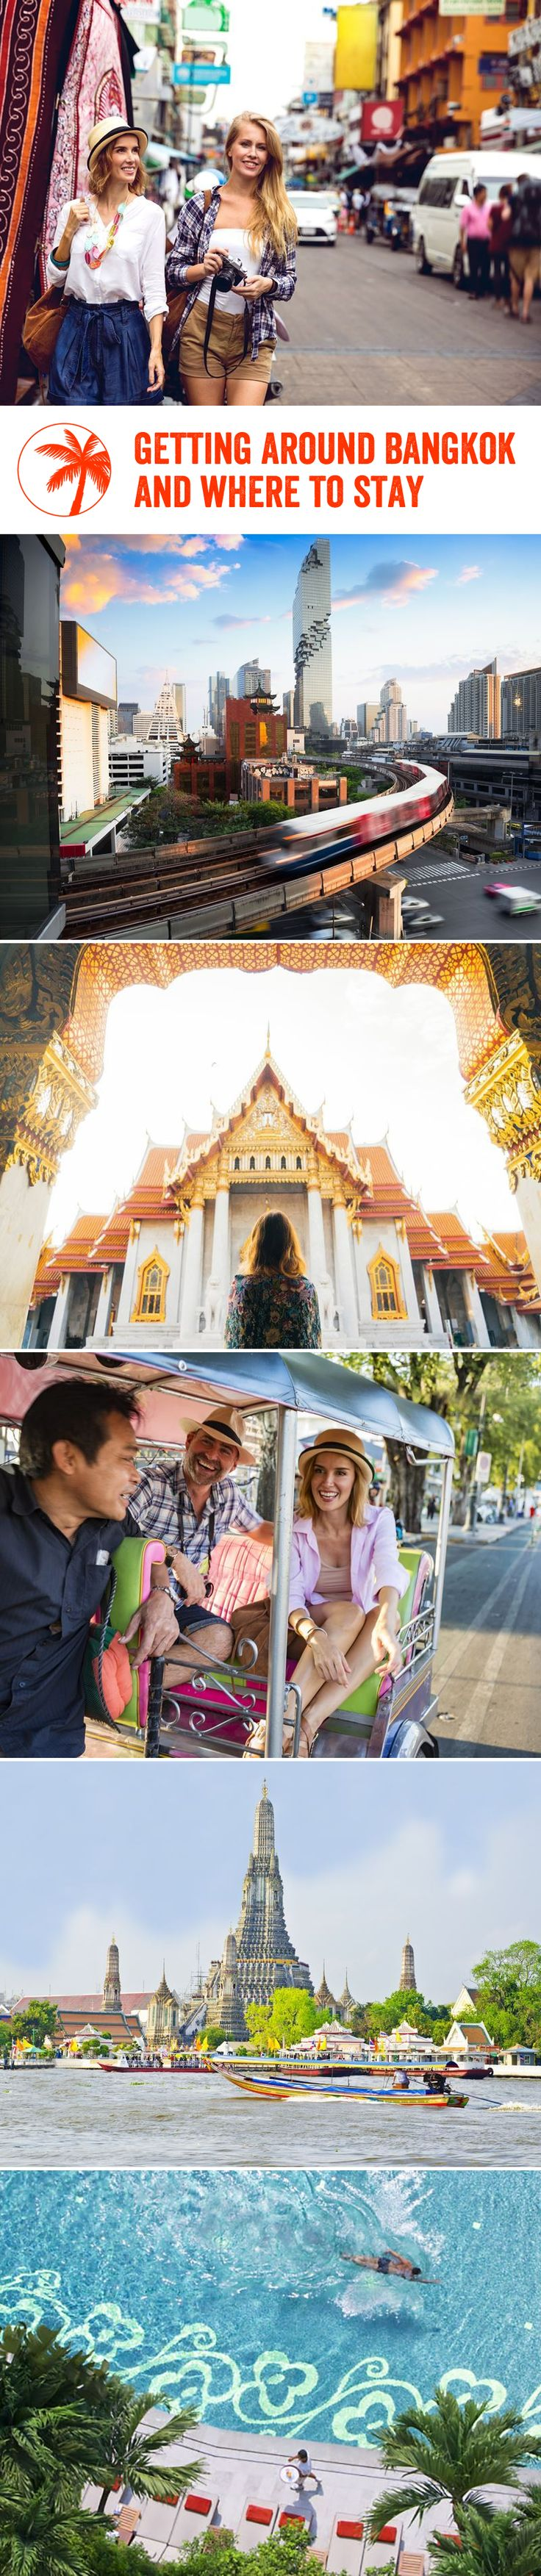 Getting around #bangkok #thailand and where to stay